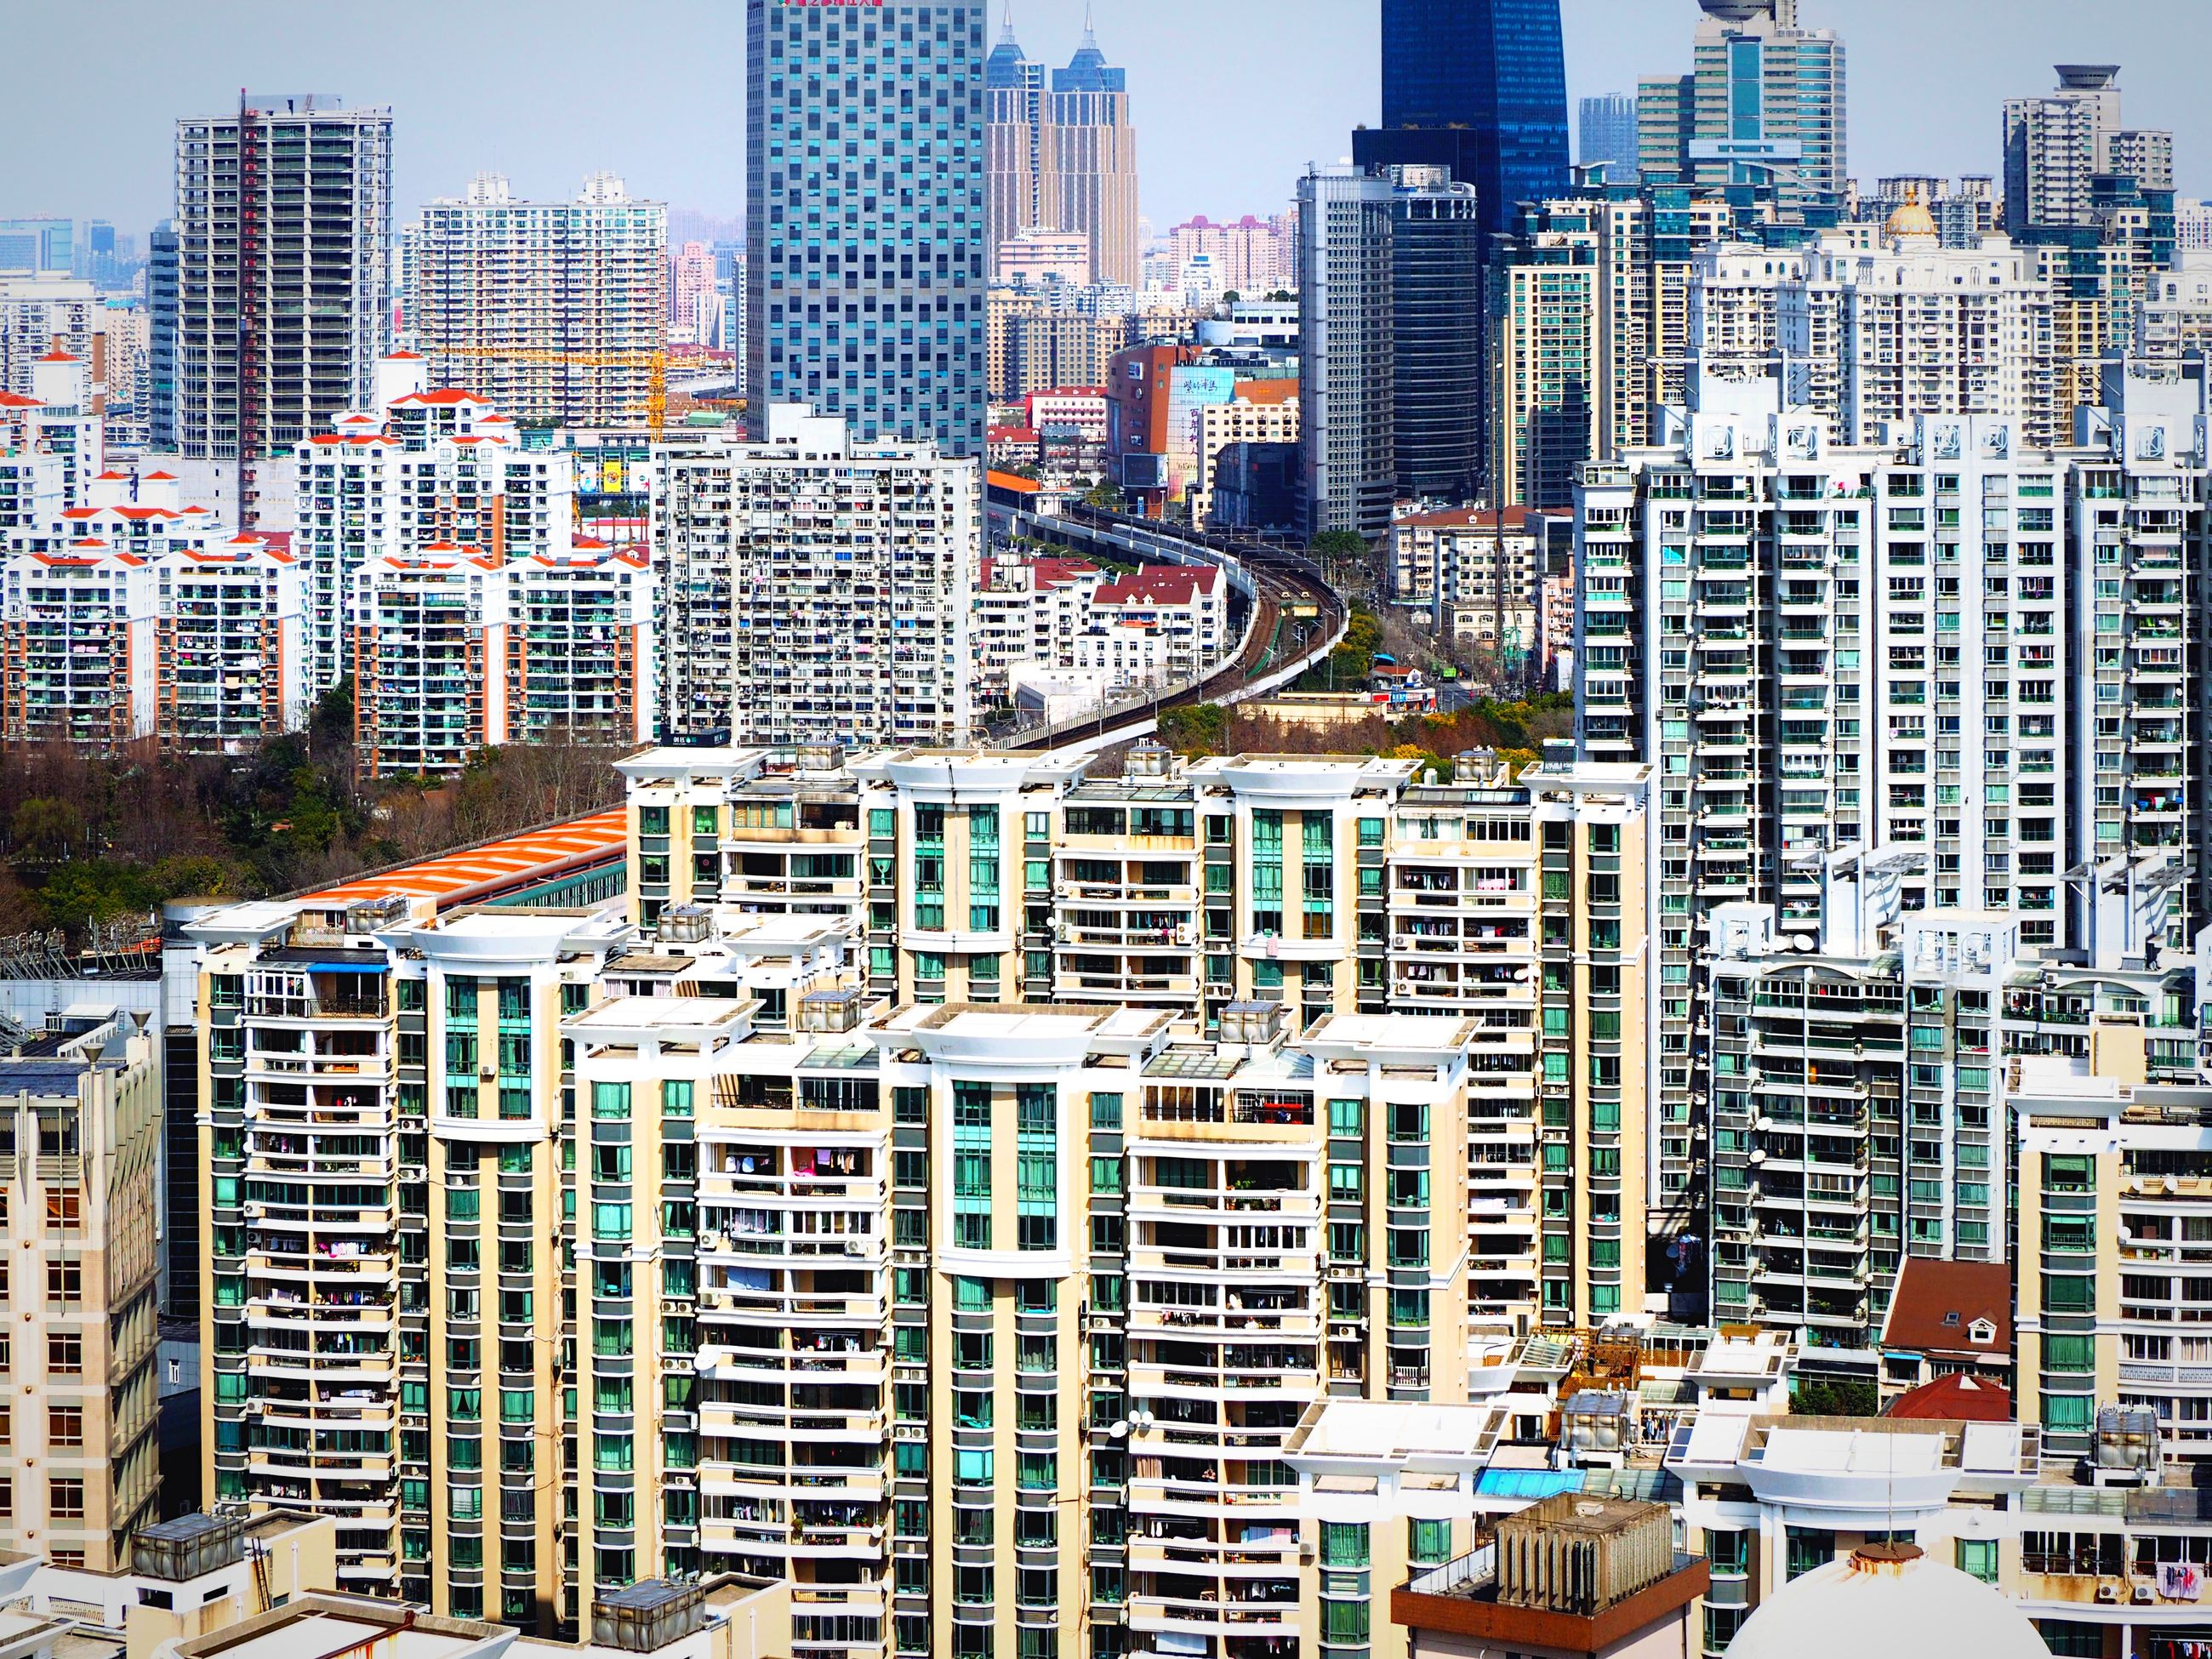 building exterior, city, architecture, built structure, skyscraper, cityscape, tall - high, modern, office building, tower, crowded, financial district, urban skyline, city life, residential building, high angle view, residential district, tall, development, capital cities